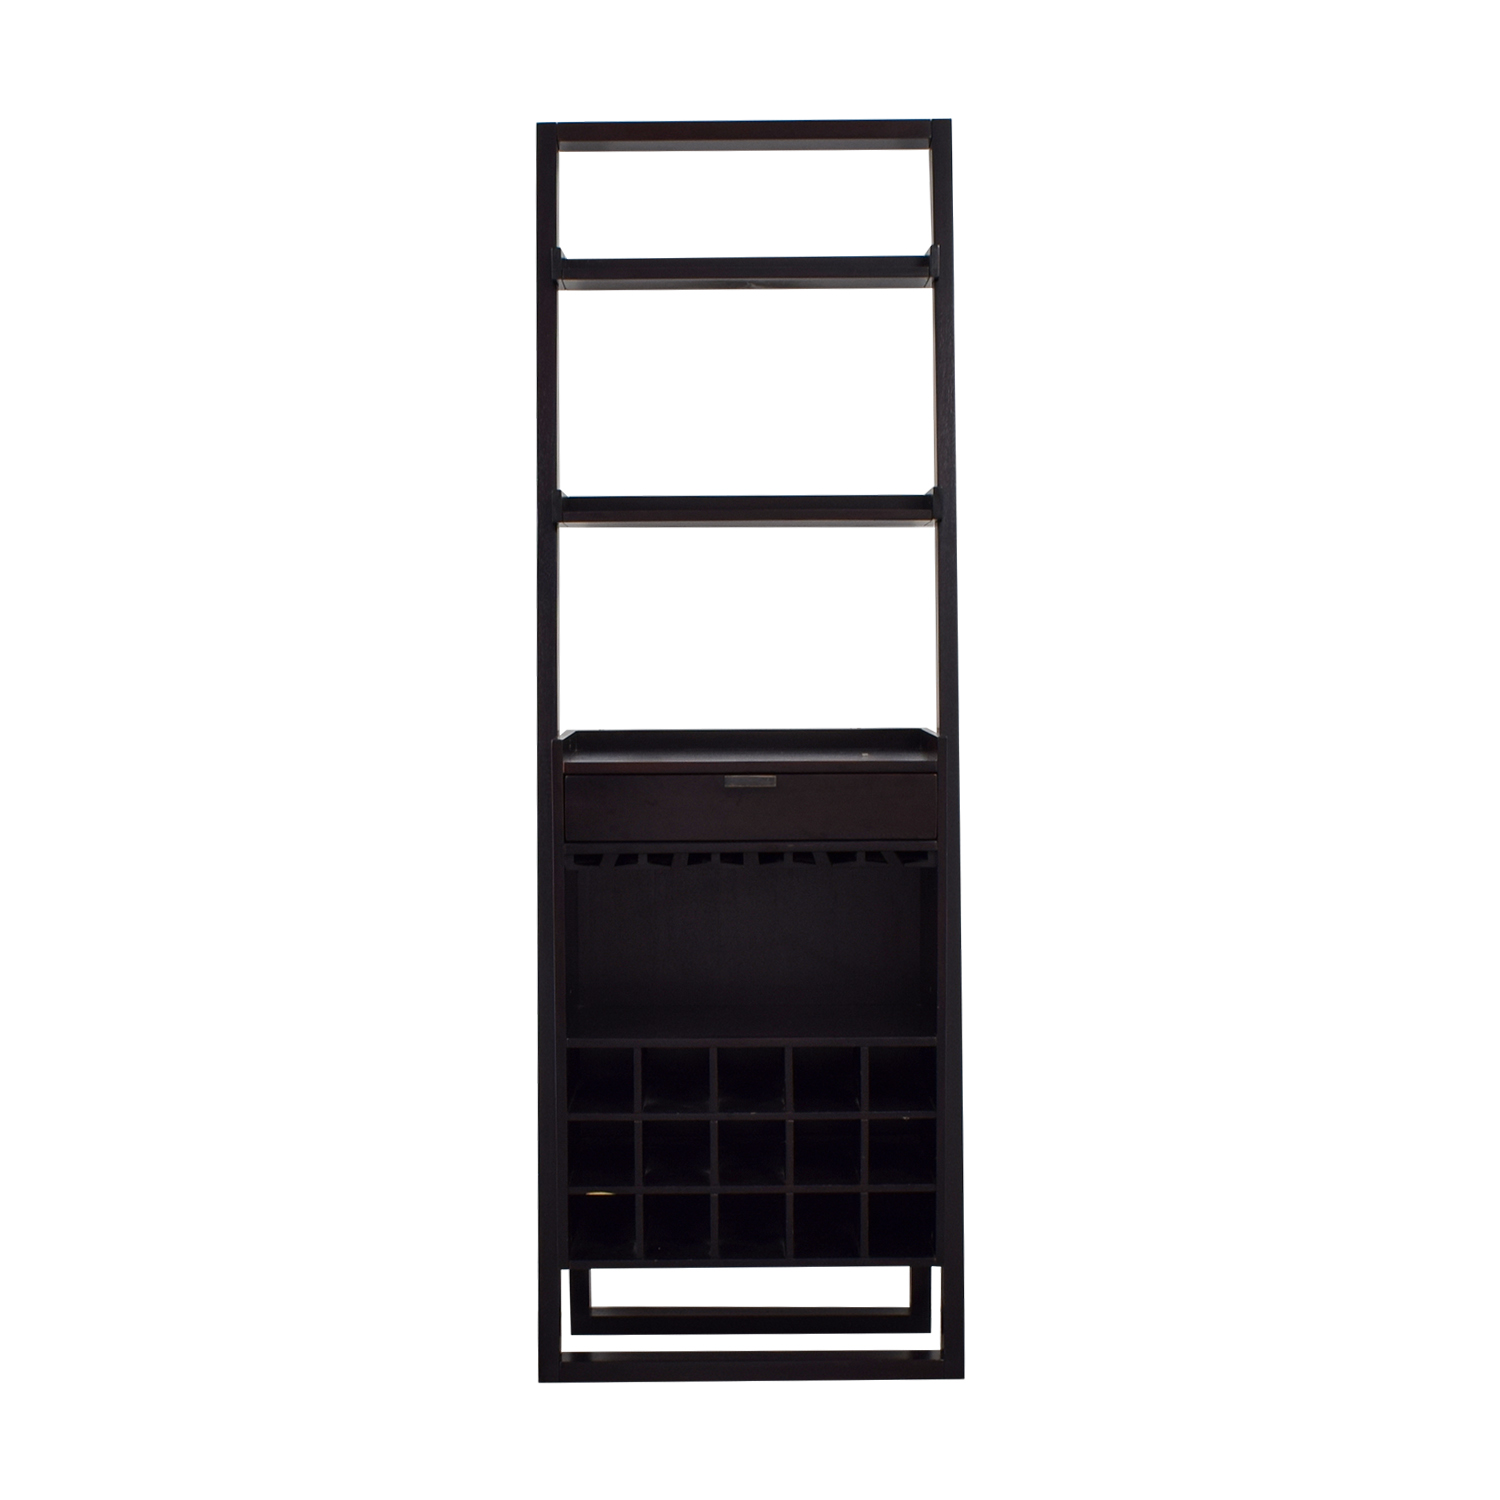 Crate & Barrel Crate & Barrel Berry Leaning Shelves and Single Drawer Bar Dark Cherry